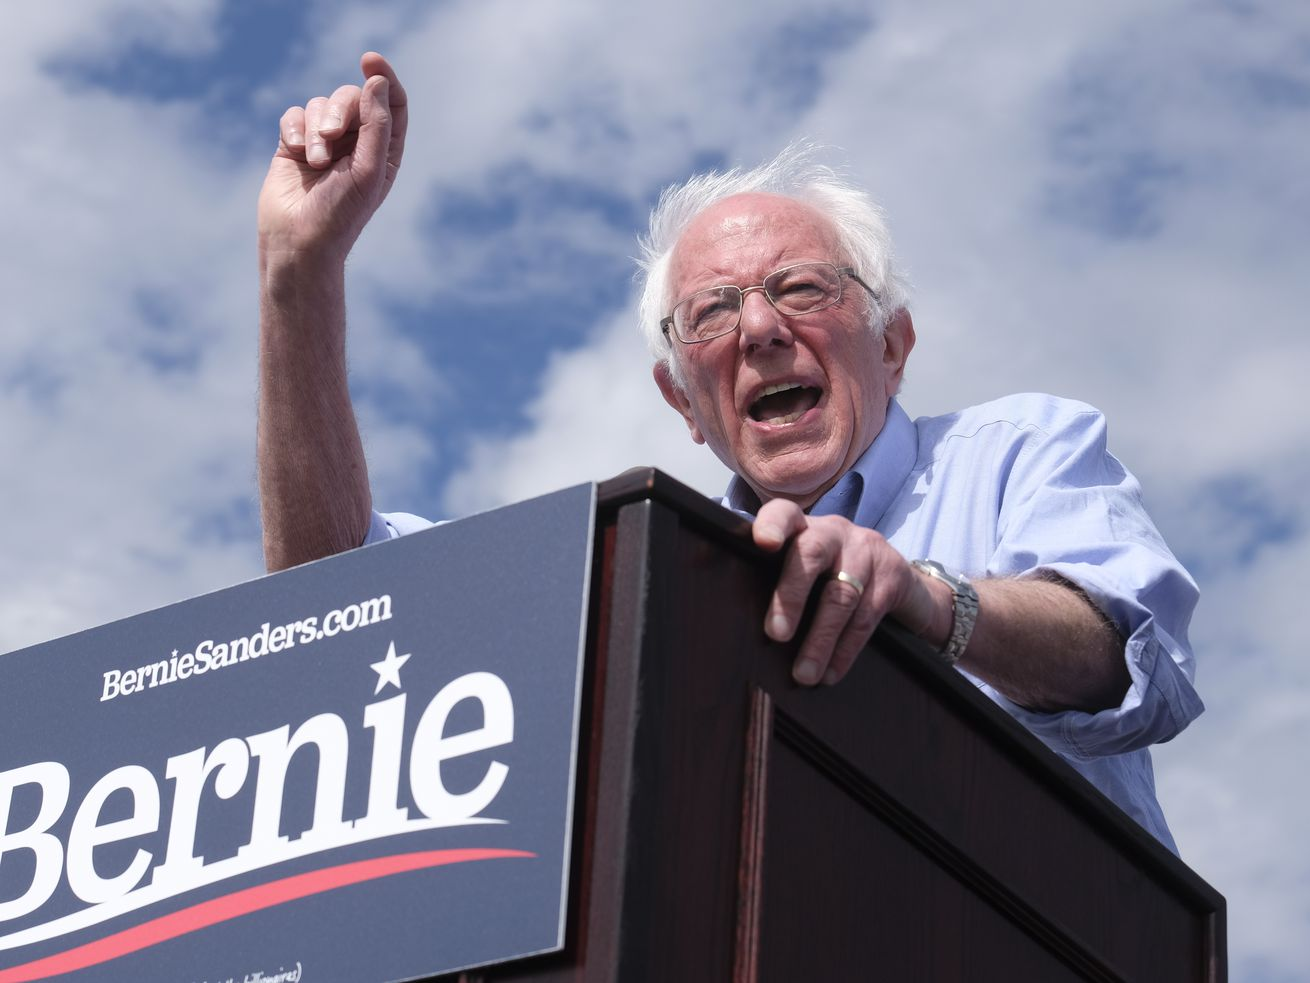 Sanders condemns Russian interference into his campaign